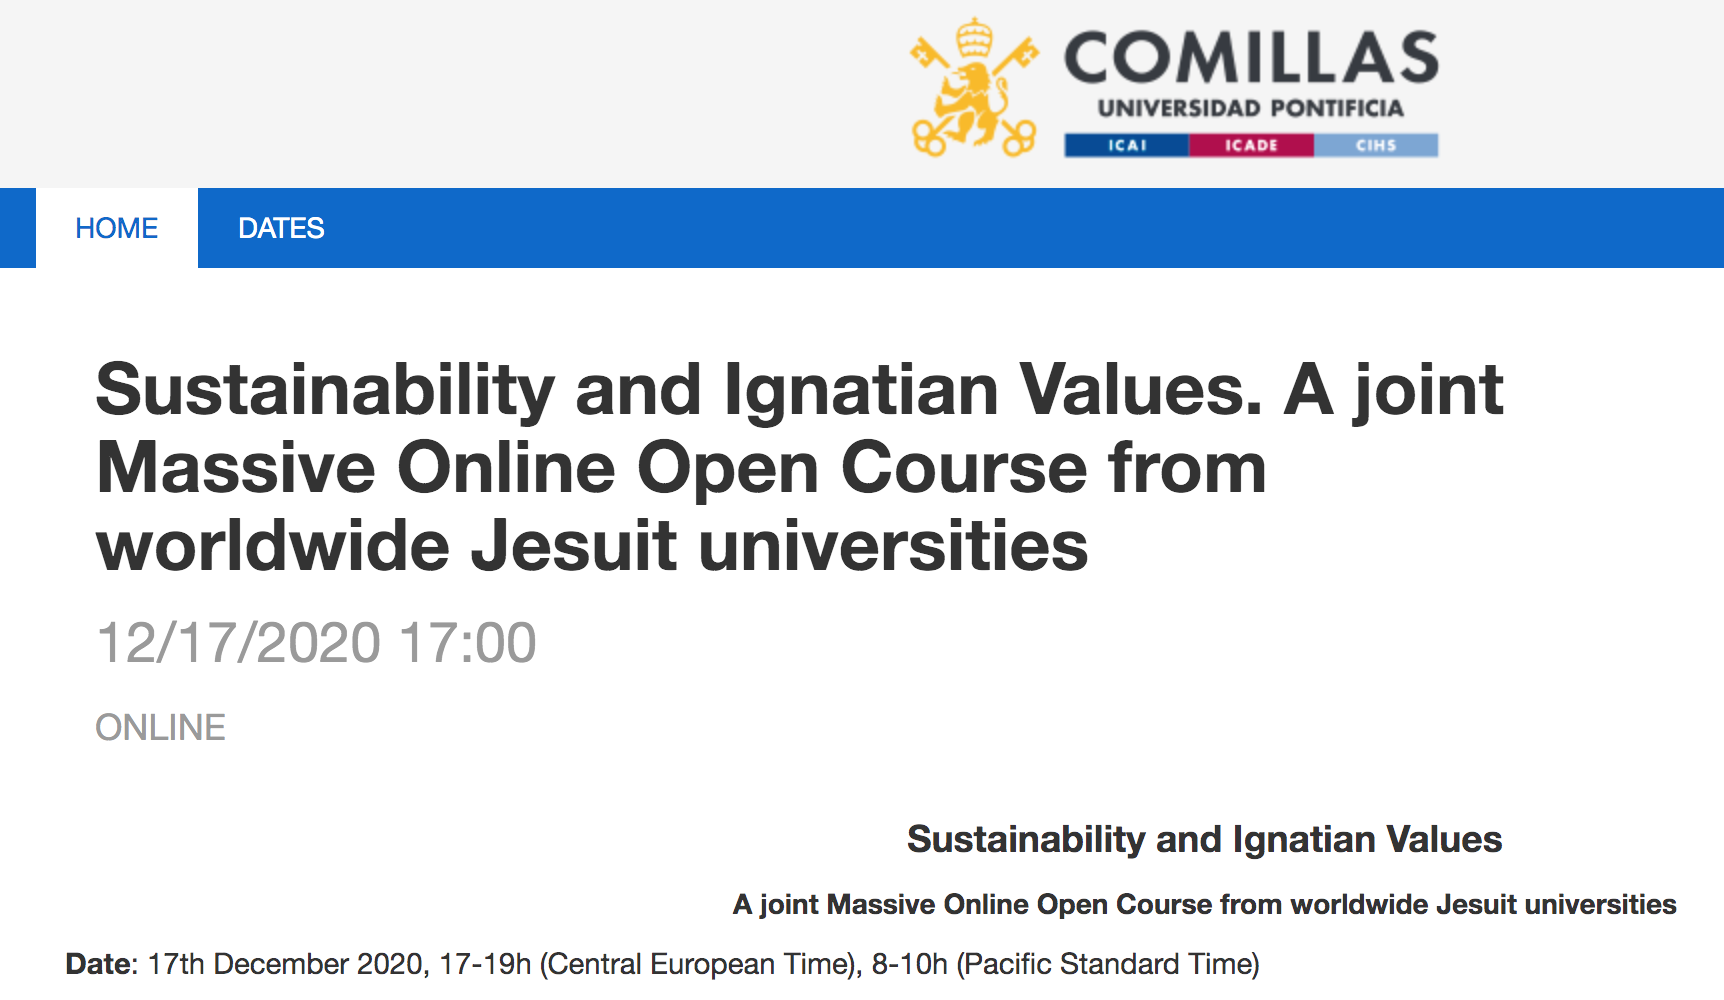 Webinar on the proposed Massive Online Open Course on sustainability and Ignatian values for Jesuit universities